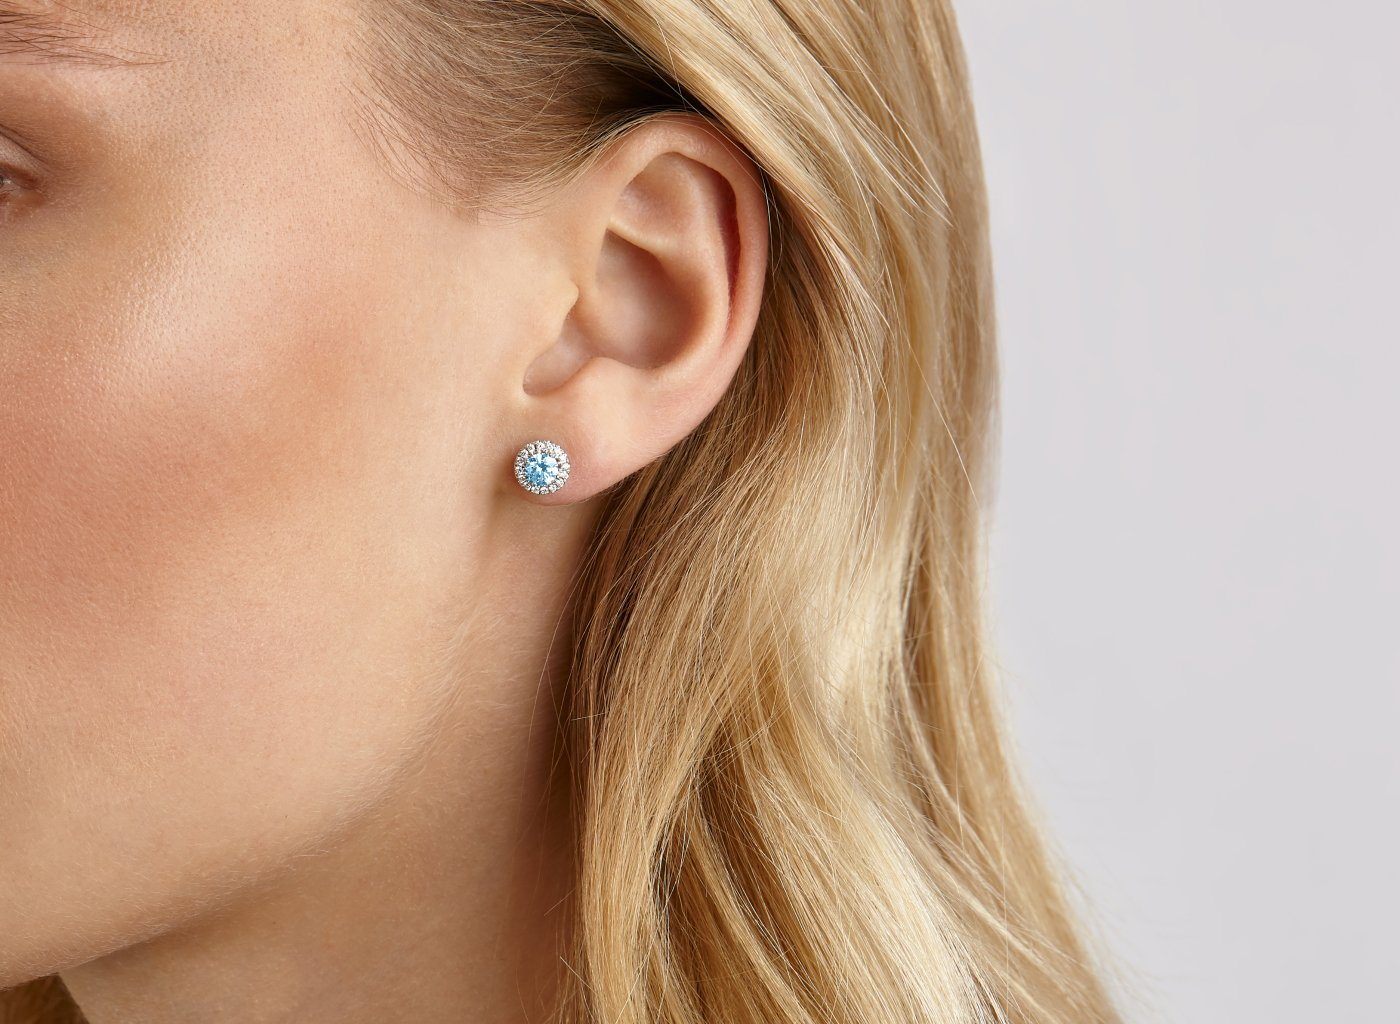 On Model view of Halo 1 carat earrings with blue and white diamonds